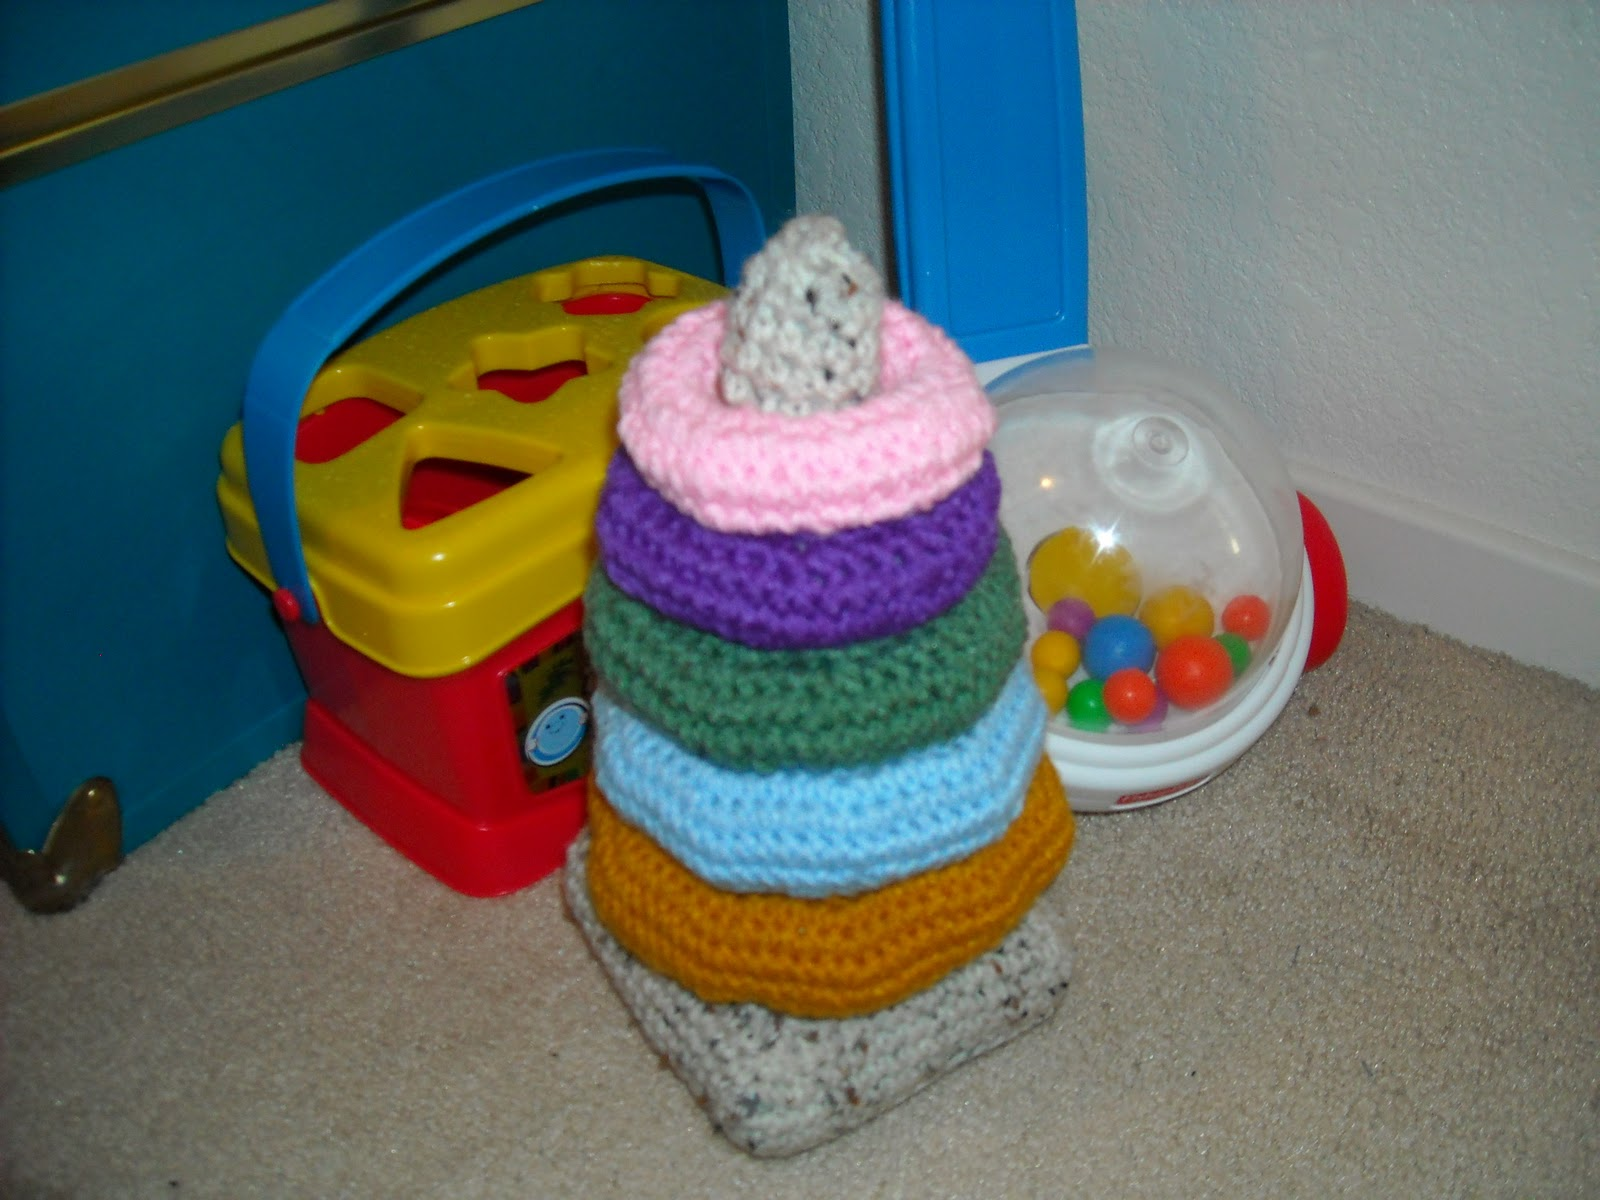 Crafty Cook: Crochet Baby Ring Stacking Toy - Part 1, The Rings